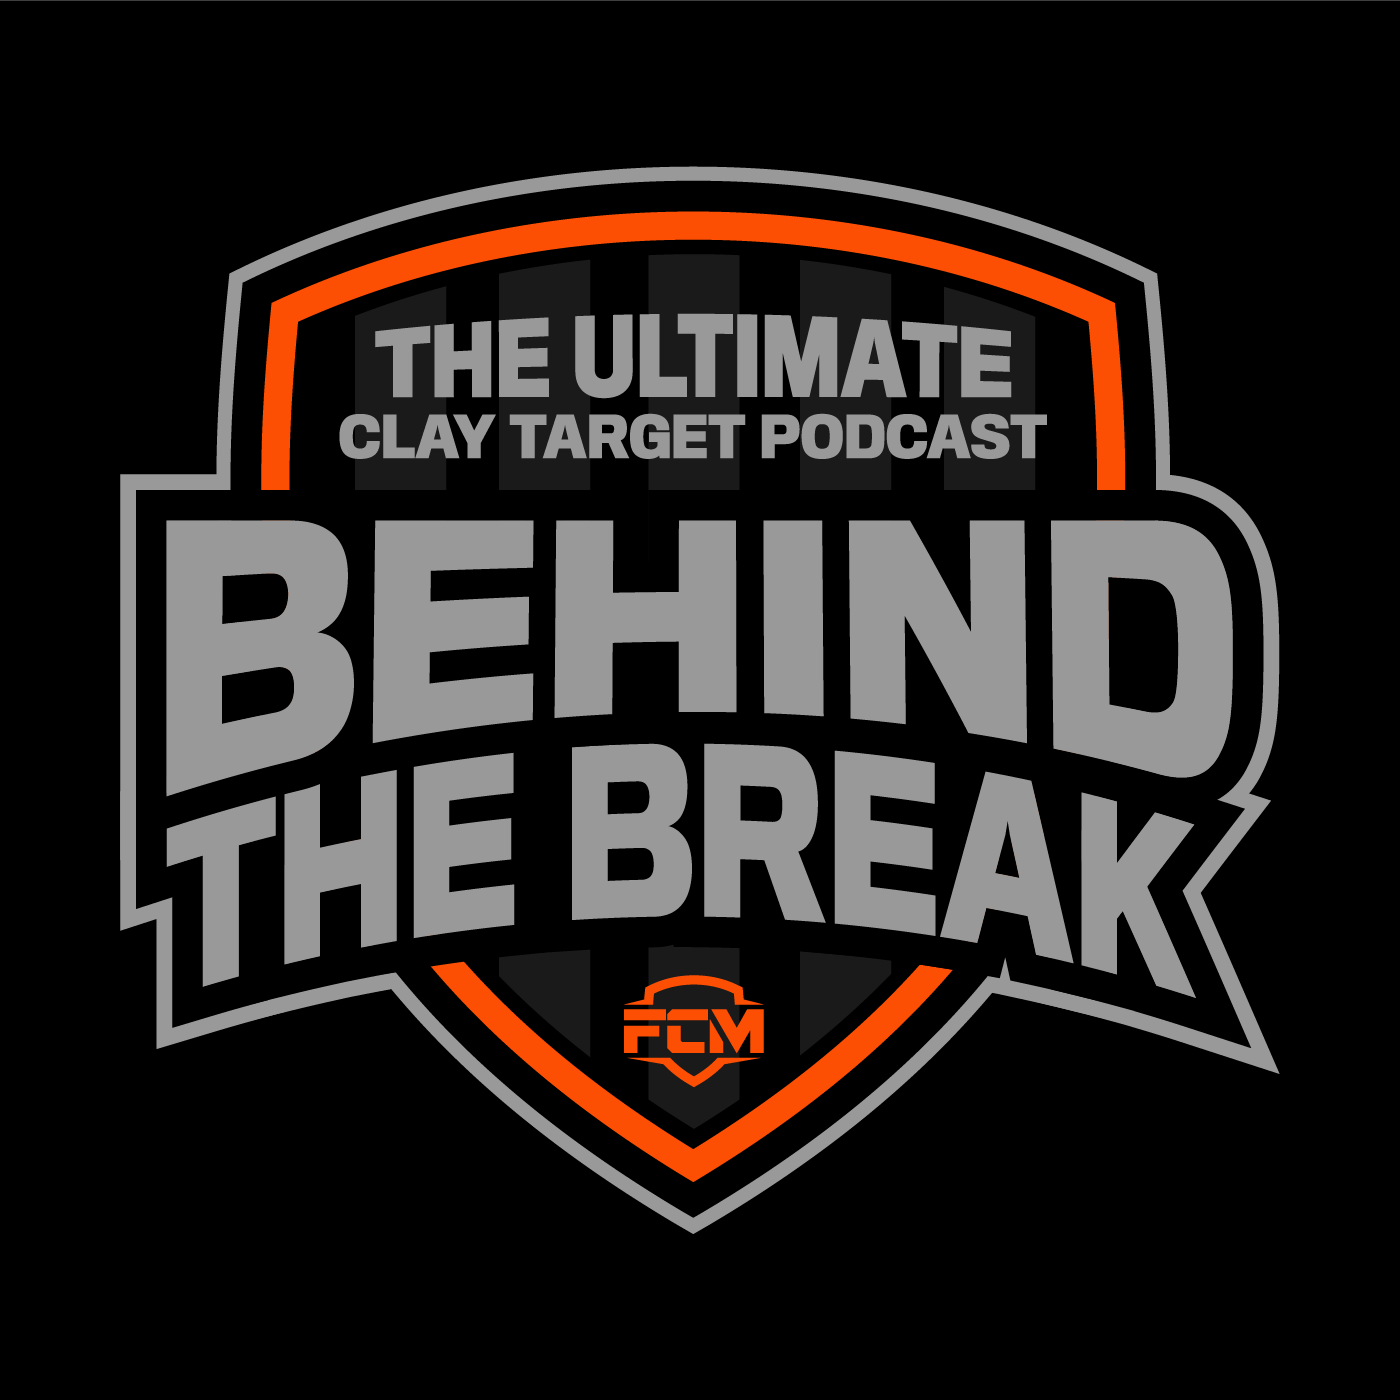 Behind The Break - The Ultimate Clay Target Podcast show art